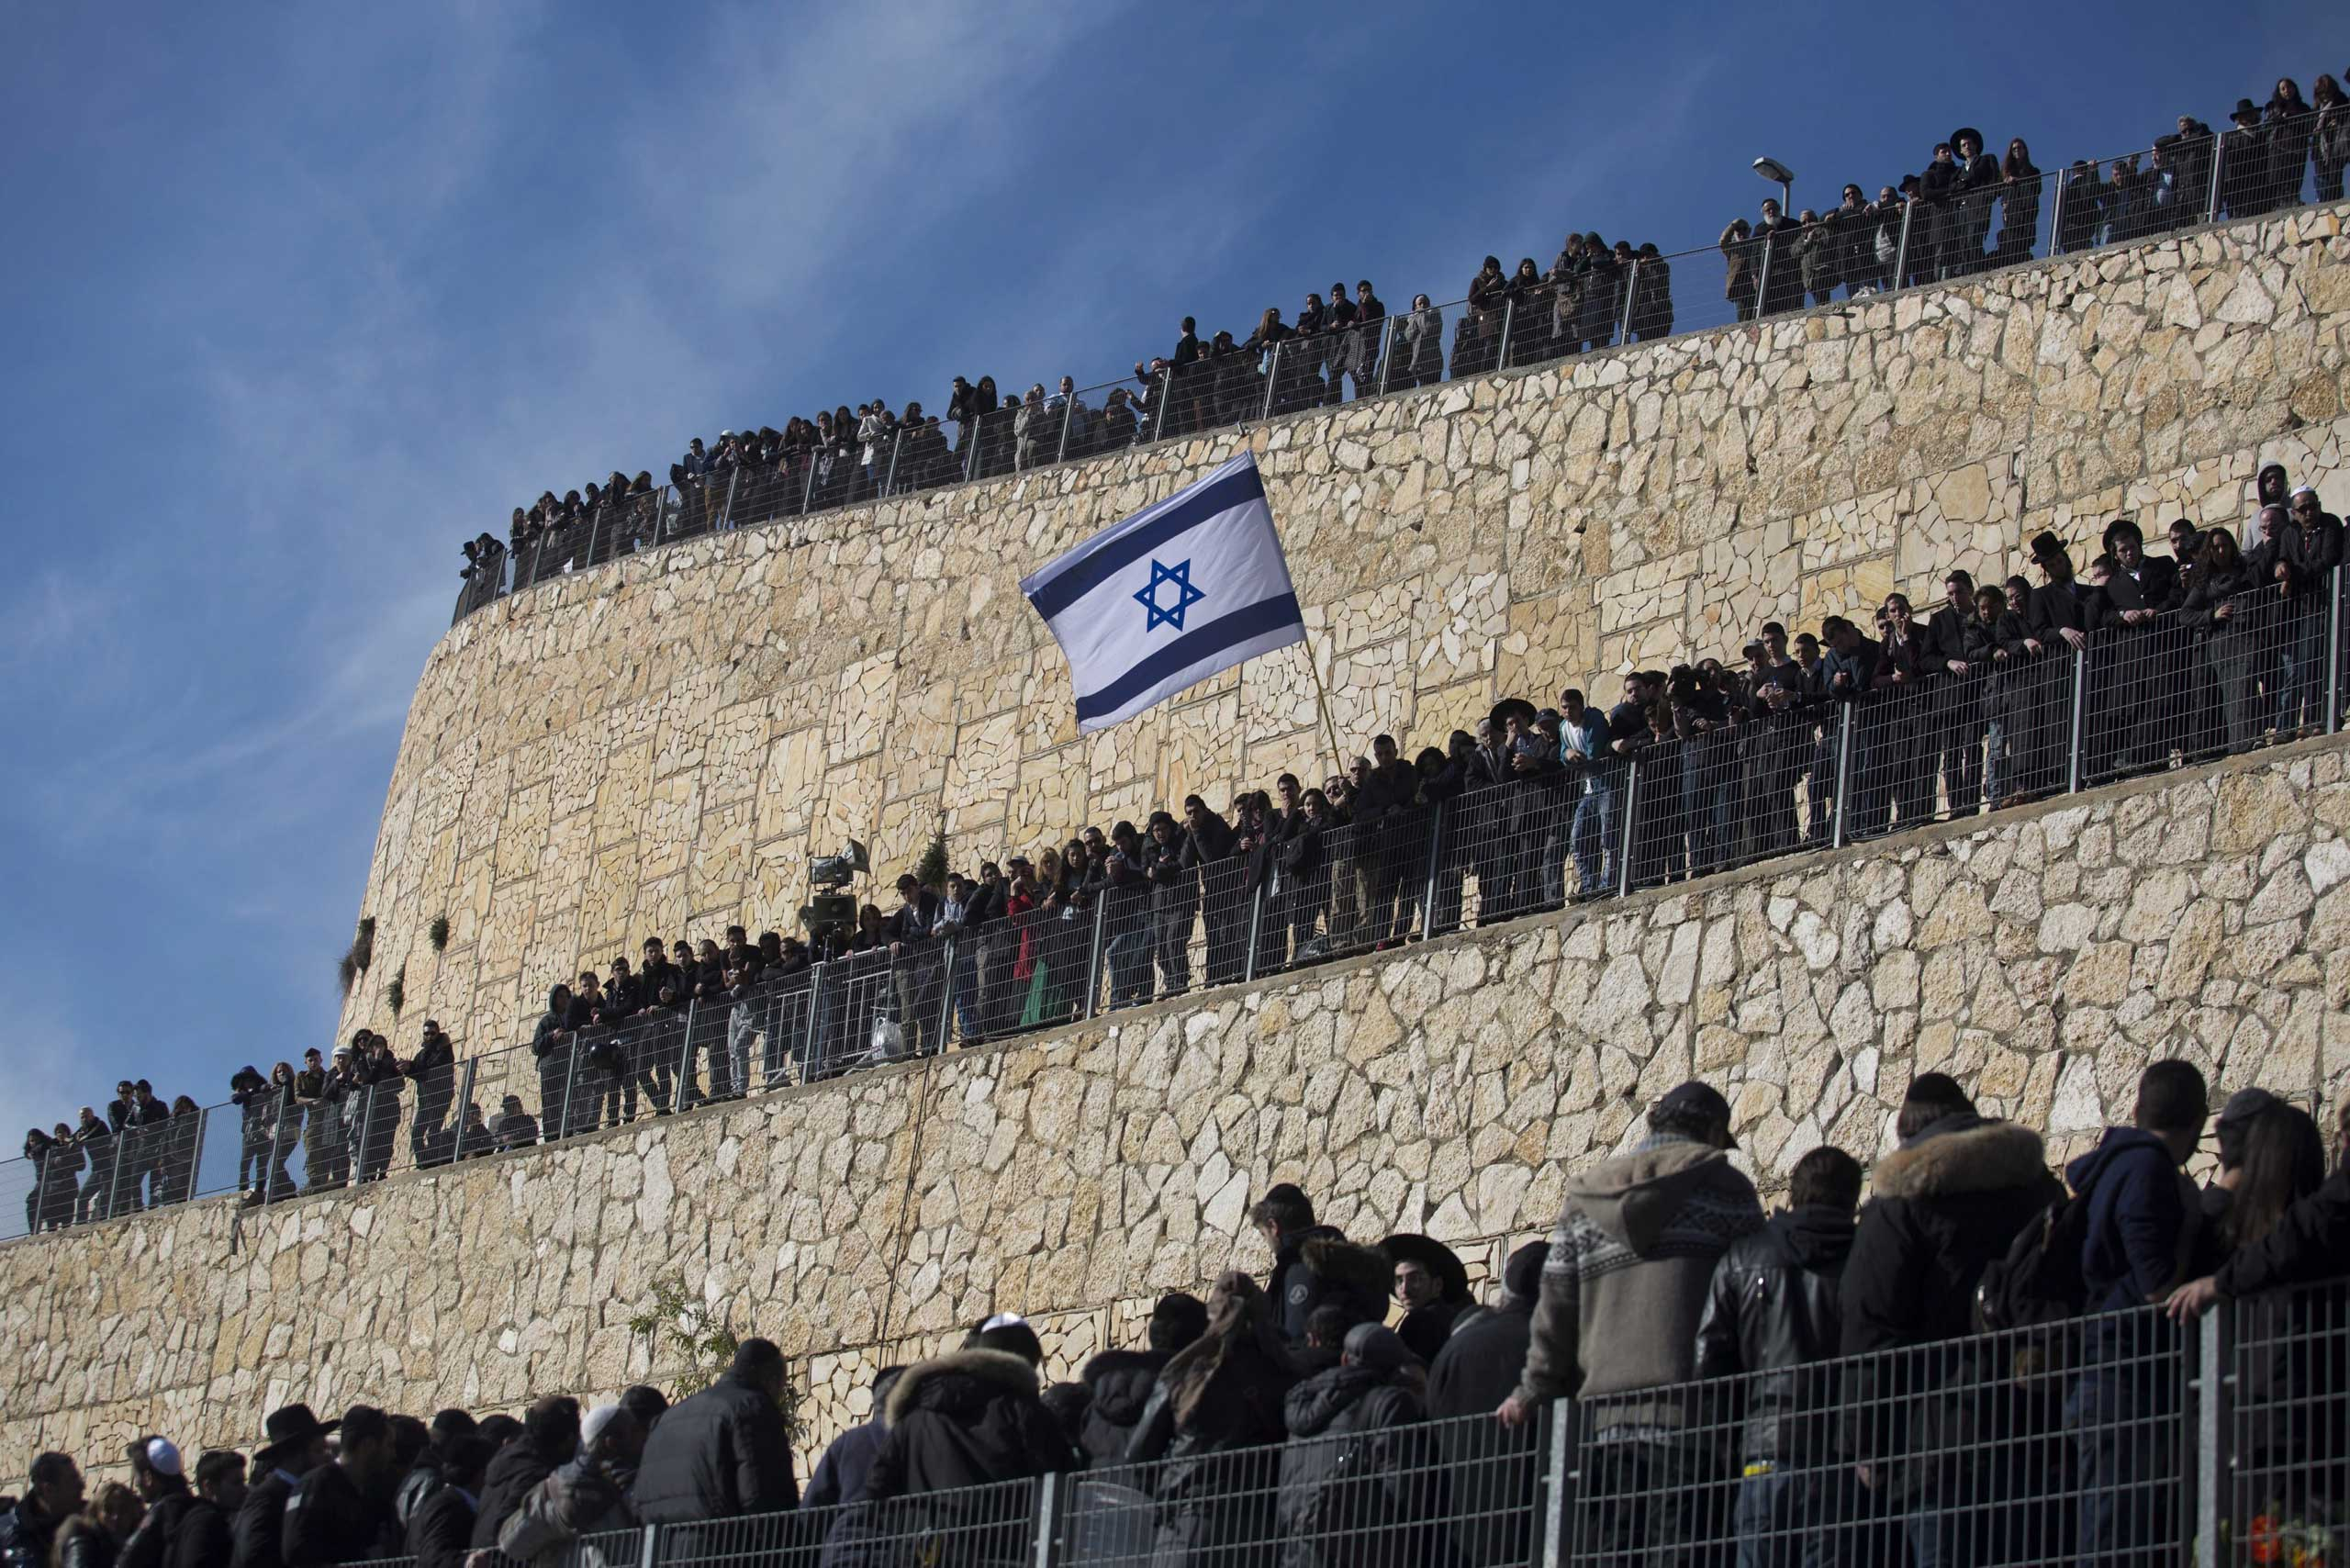 Crowds mourn the four Jews killed in the Paris kosher supermarket attack during a funeral in Jerusalem on Jan. 13, 2015.